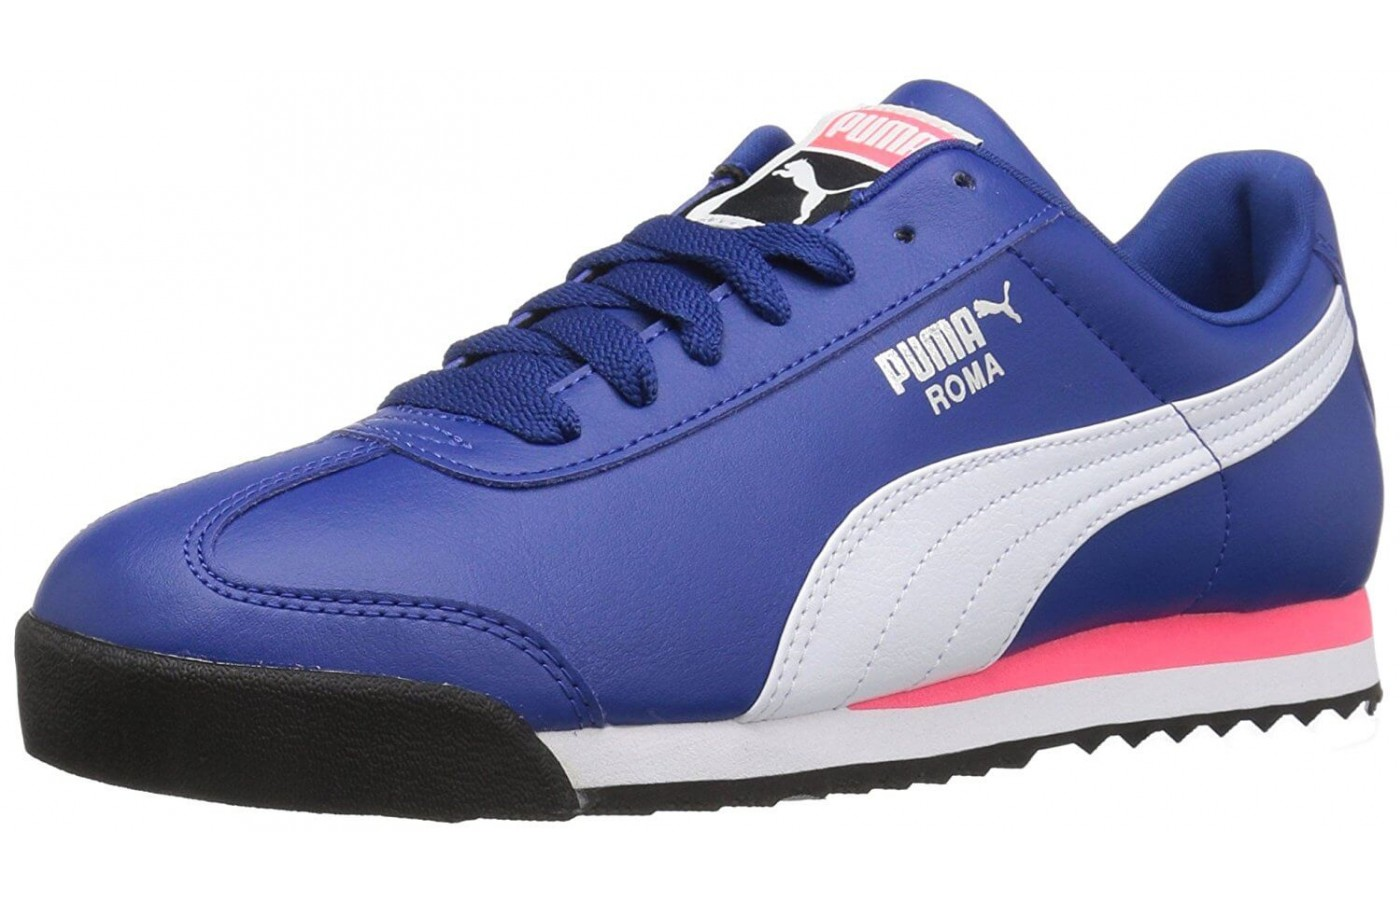 The Puma Roma features a faux-leather upper